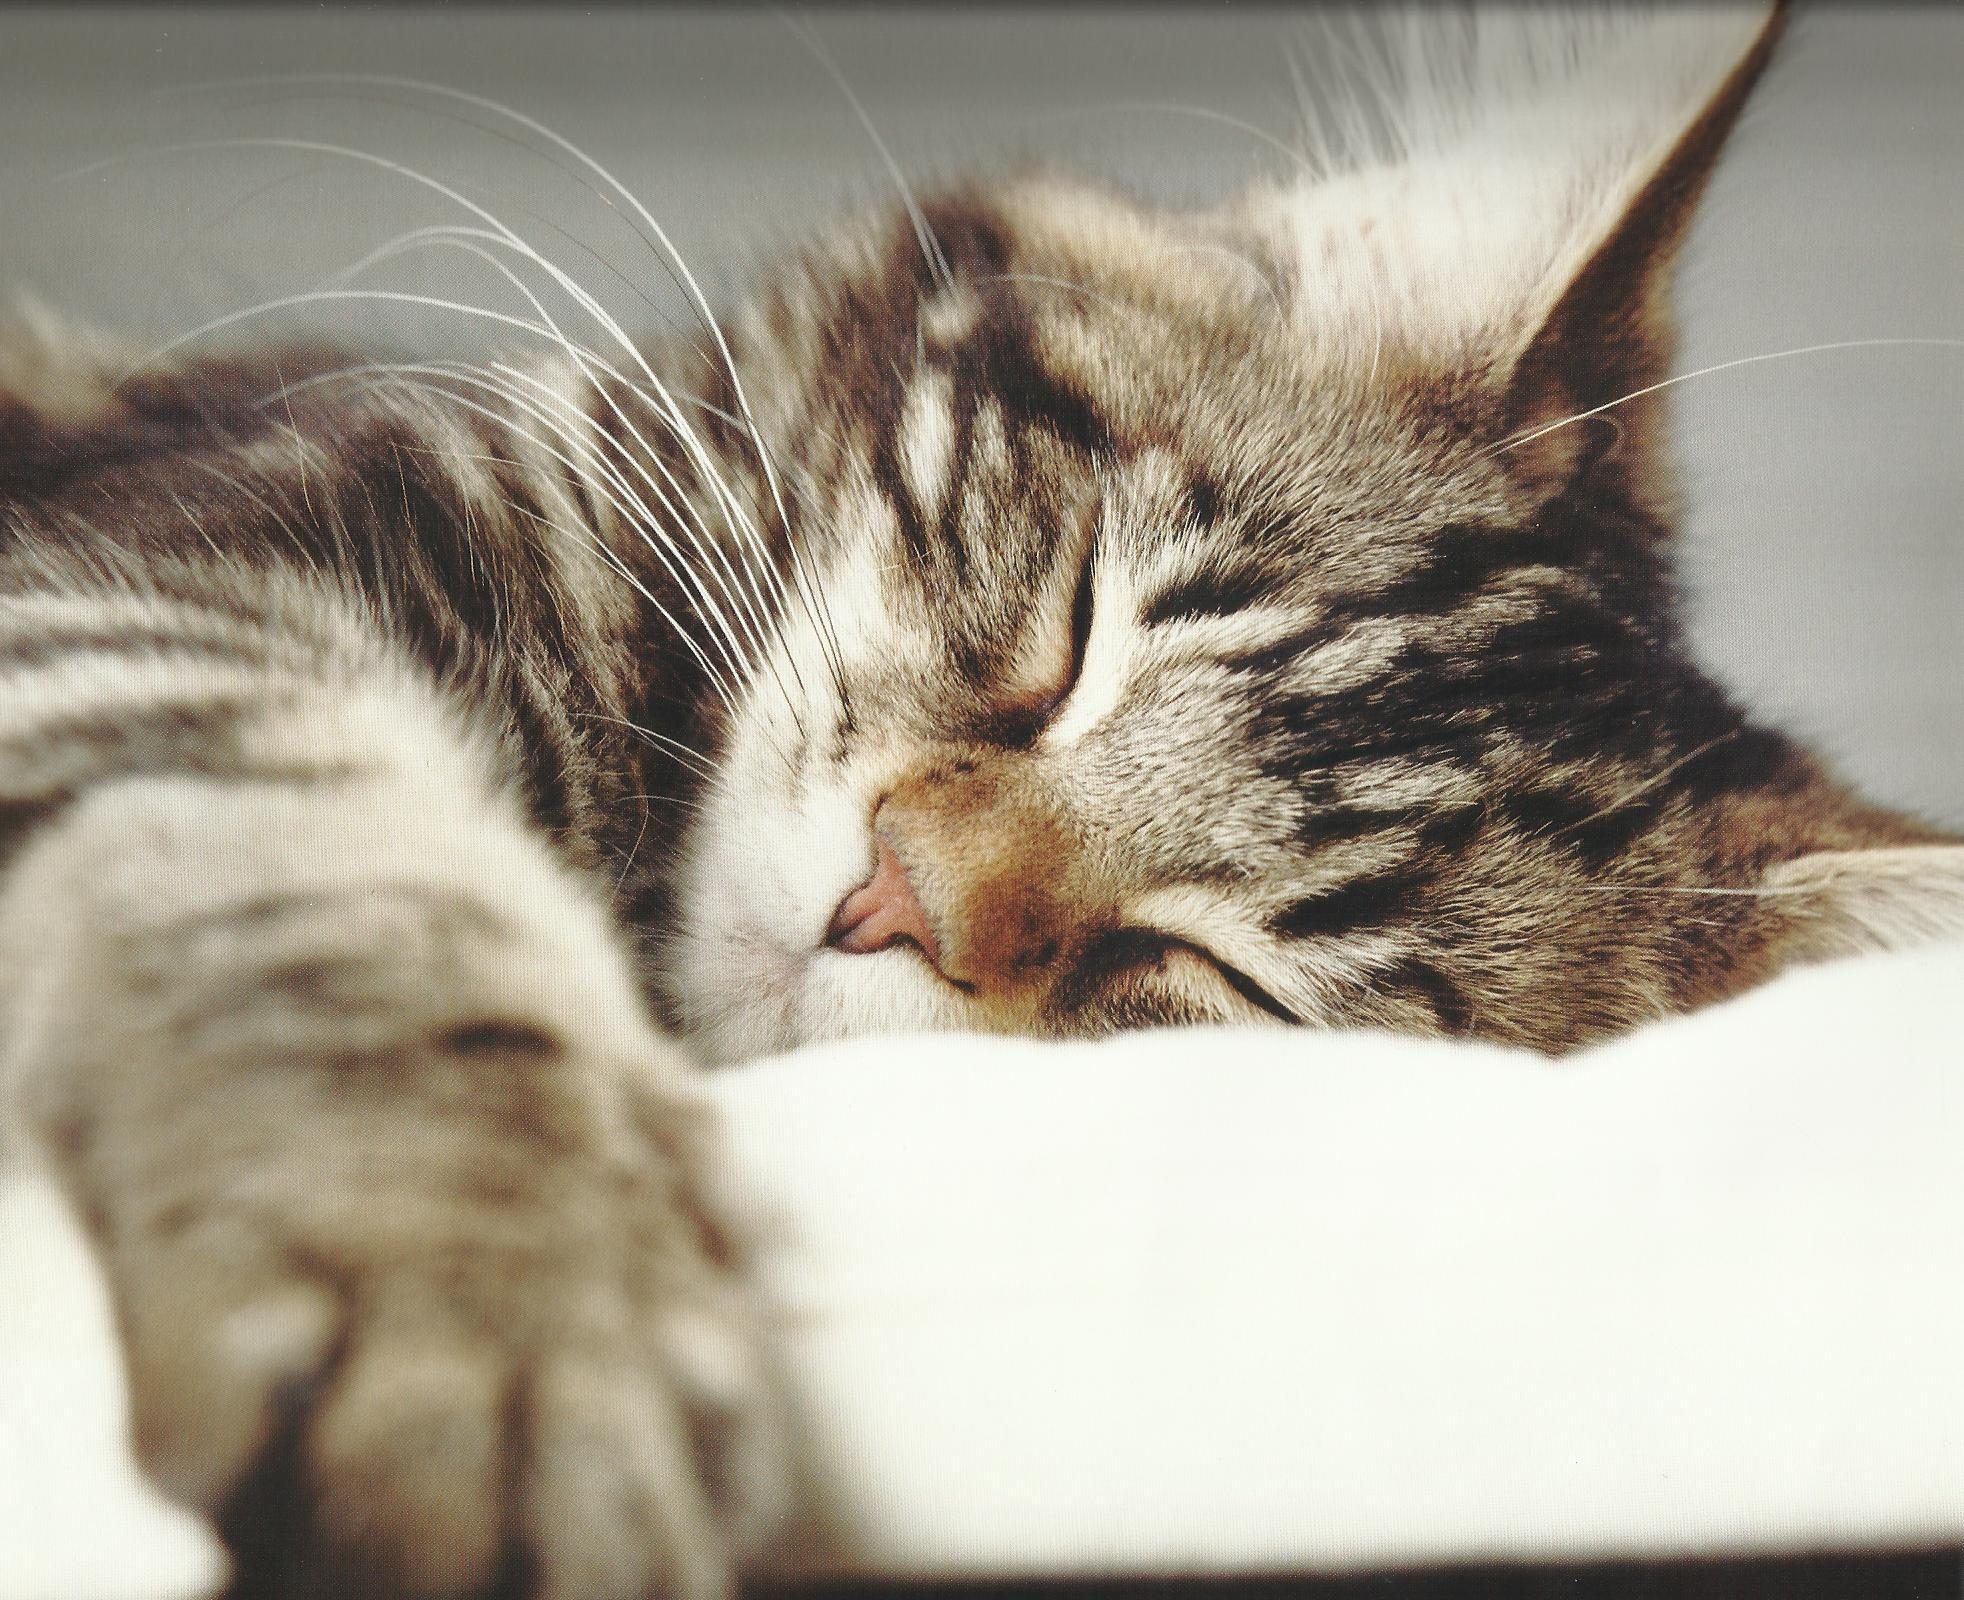 Small beautiful cat sleeping wallpapers and images - wallpapers ...